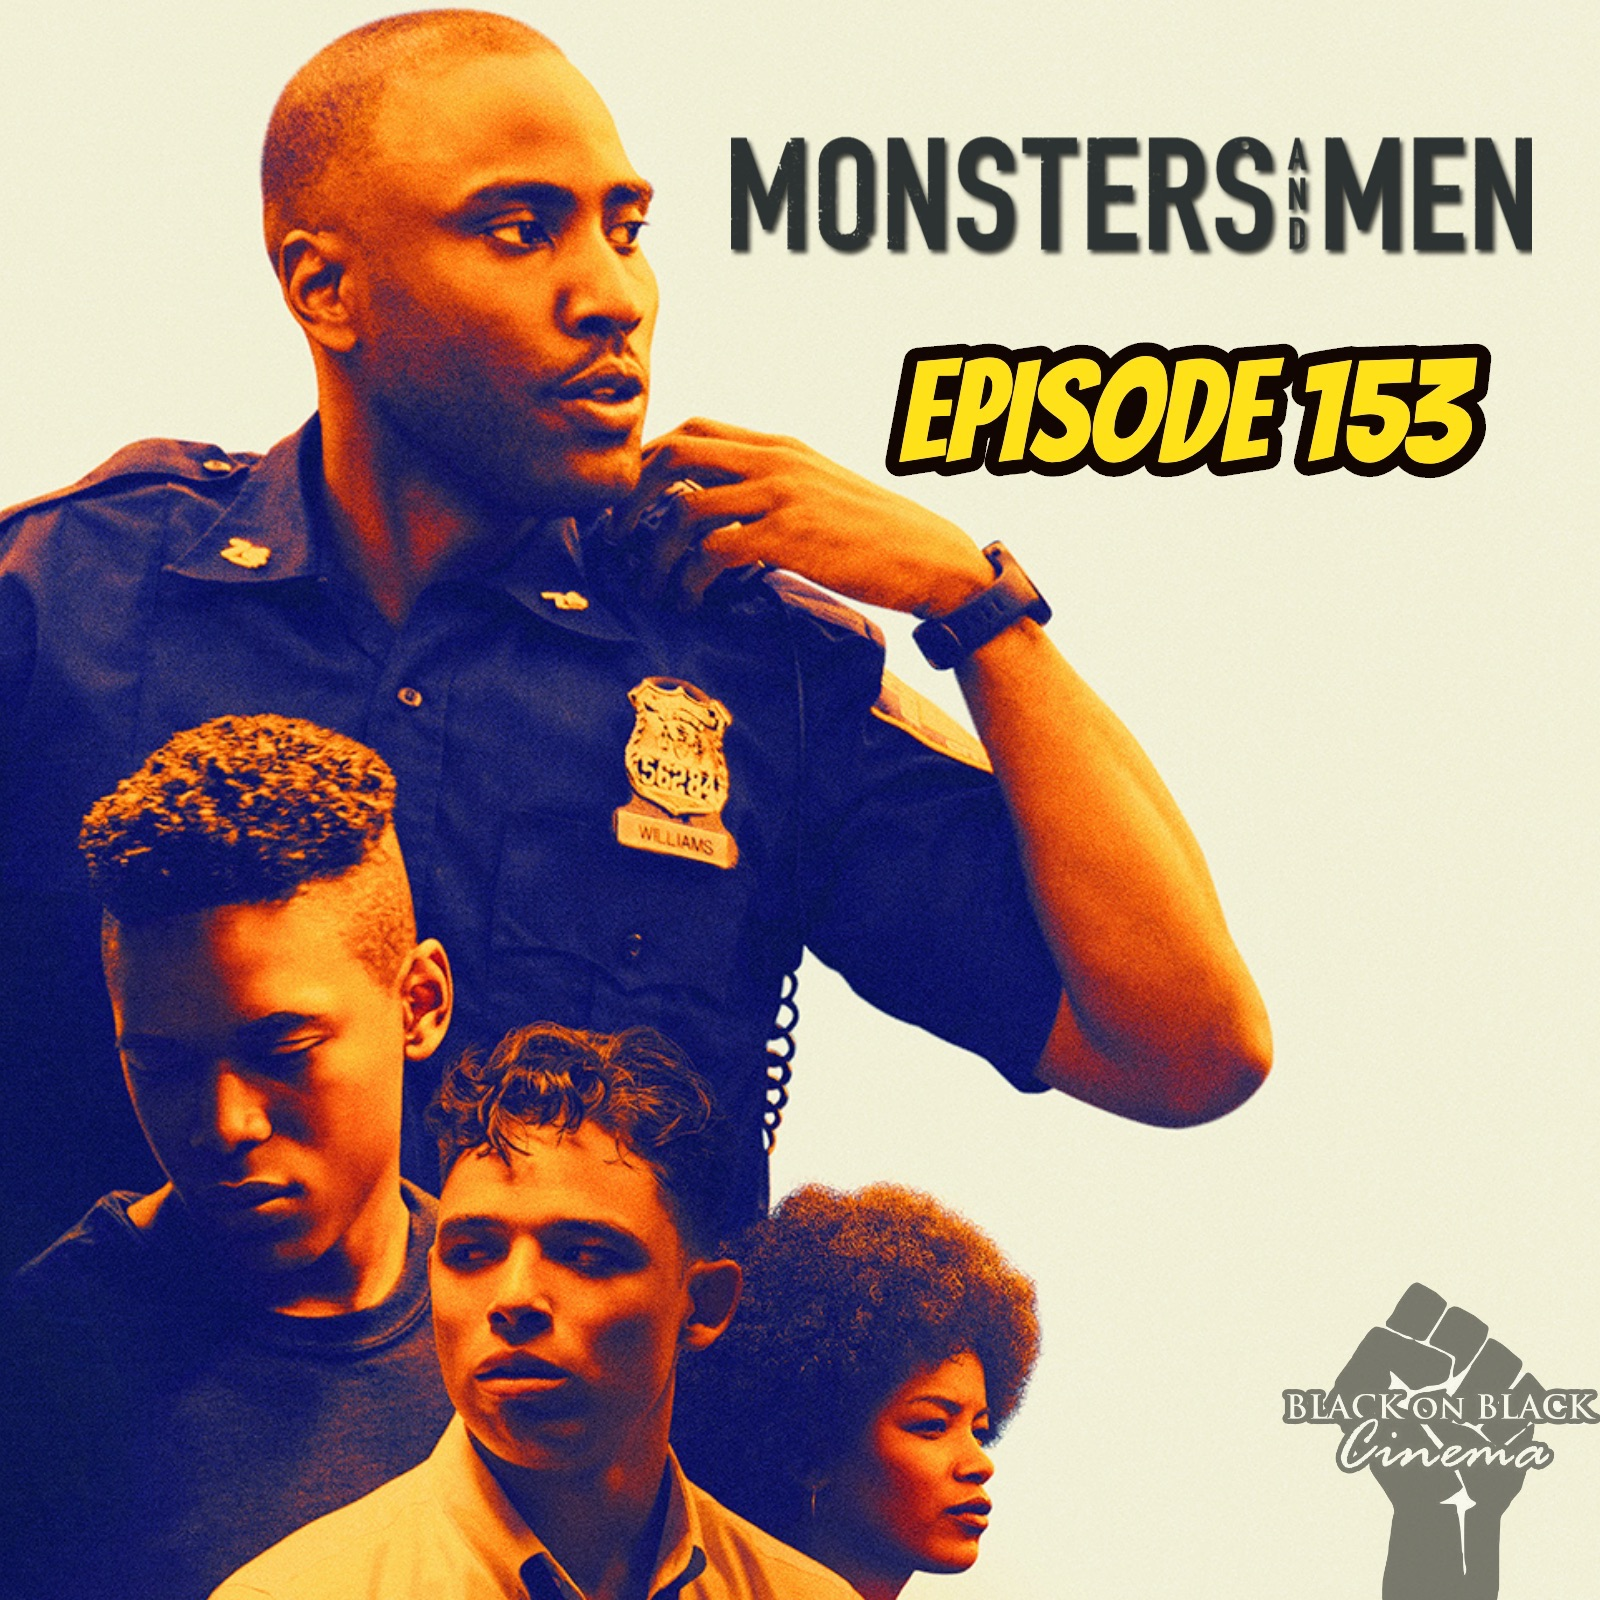 Monsters and Men - Episode 153